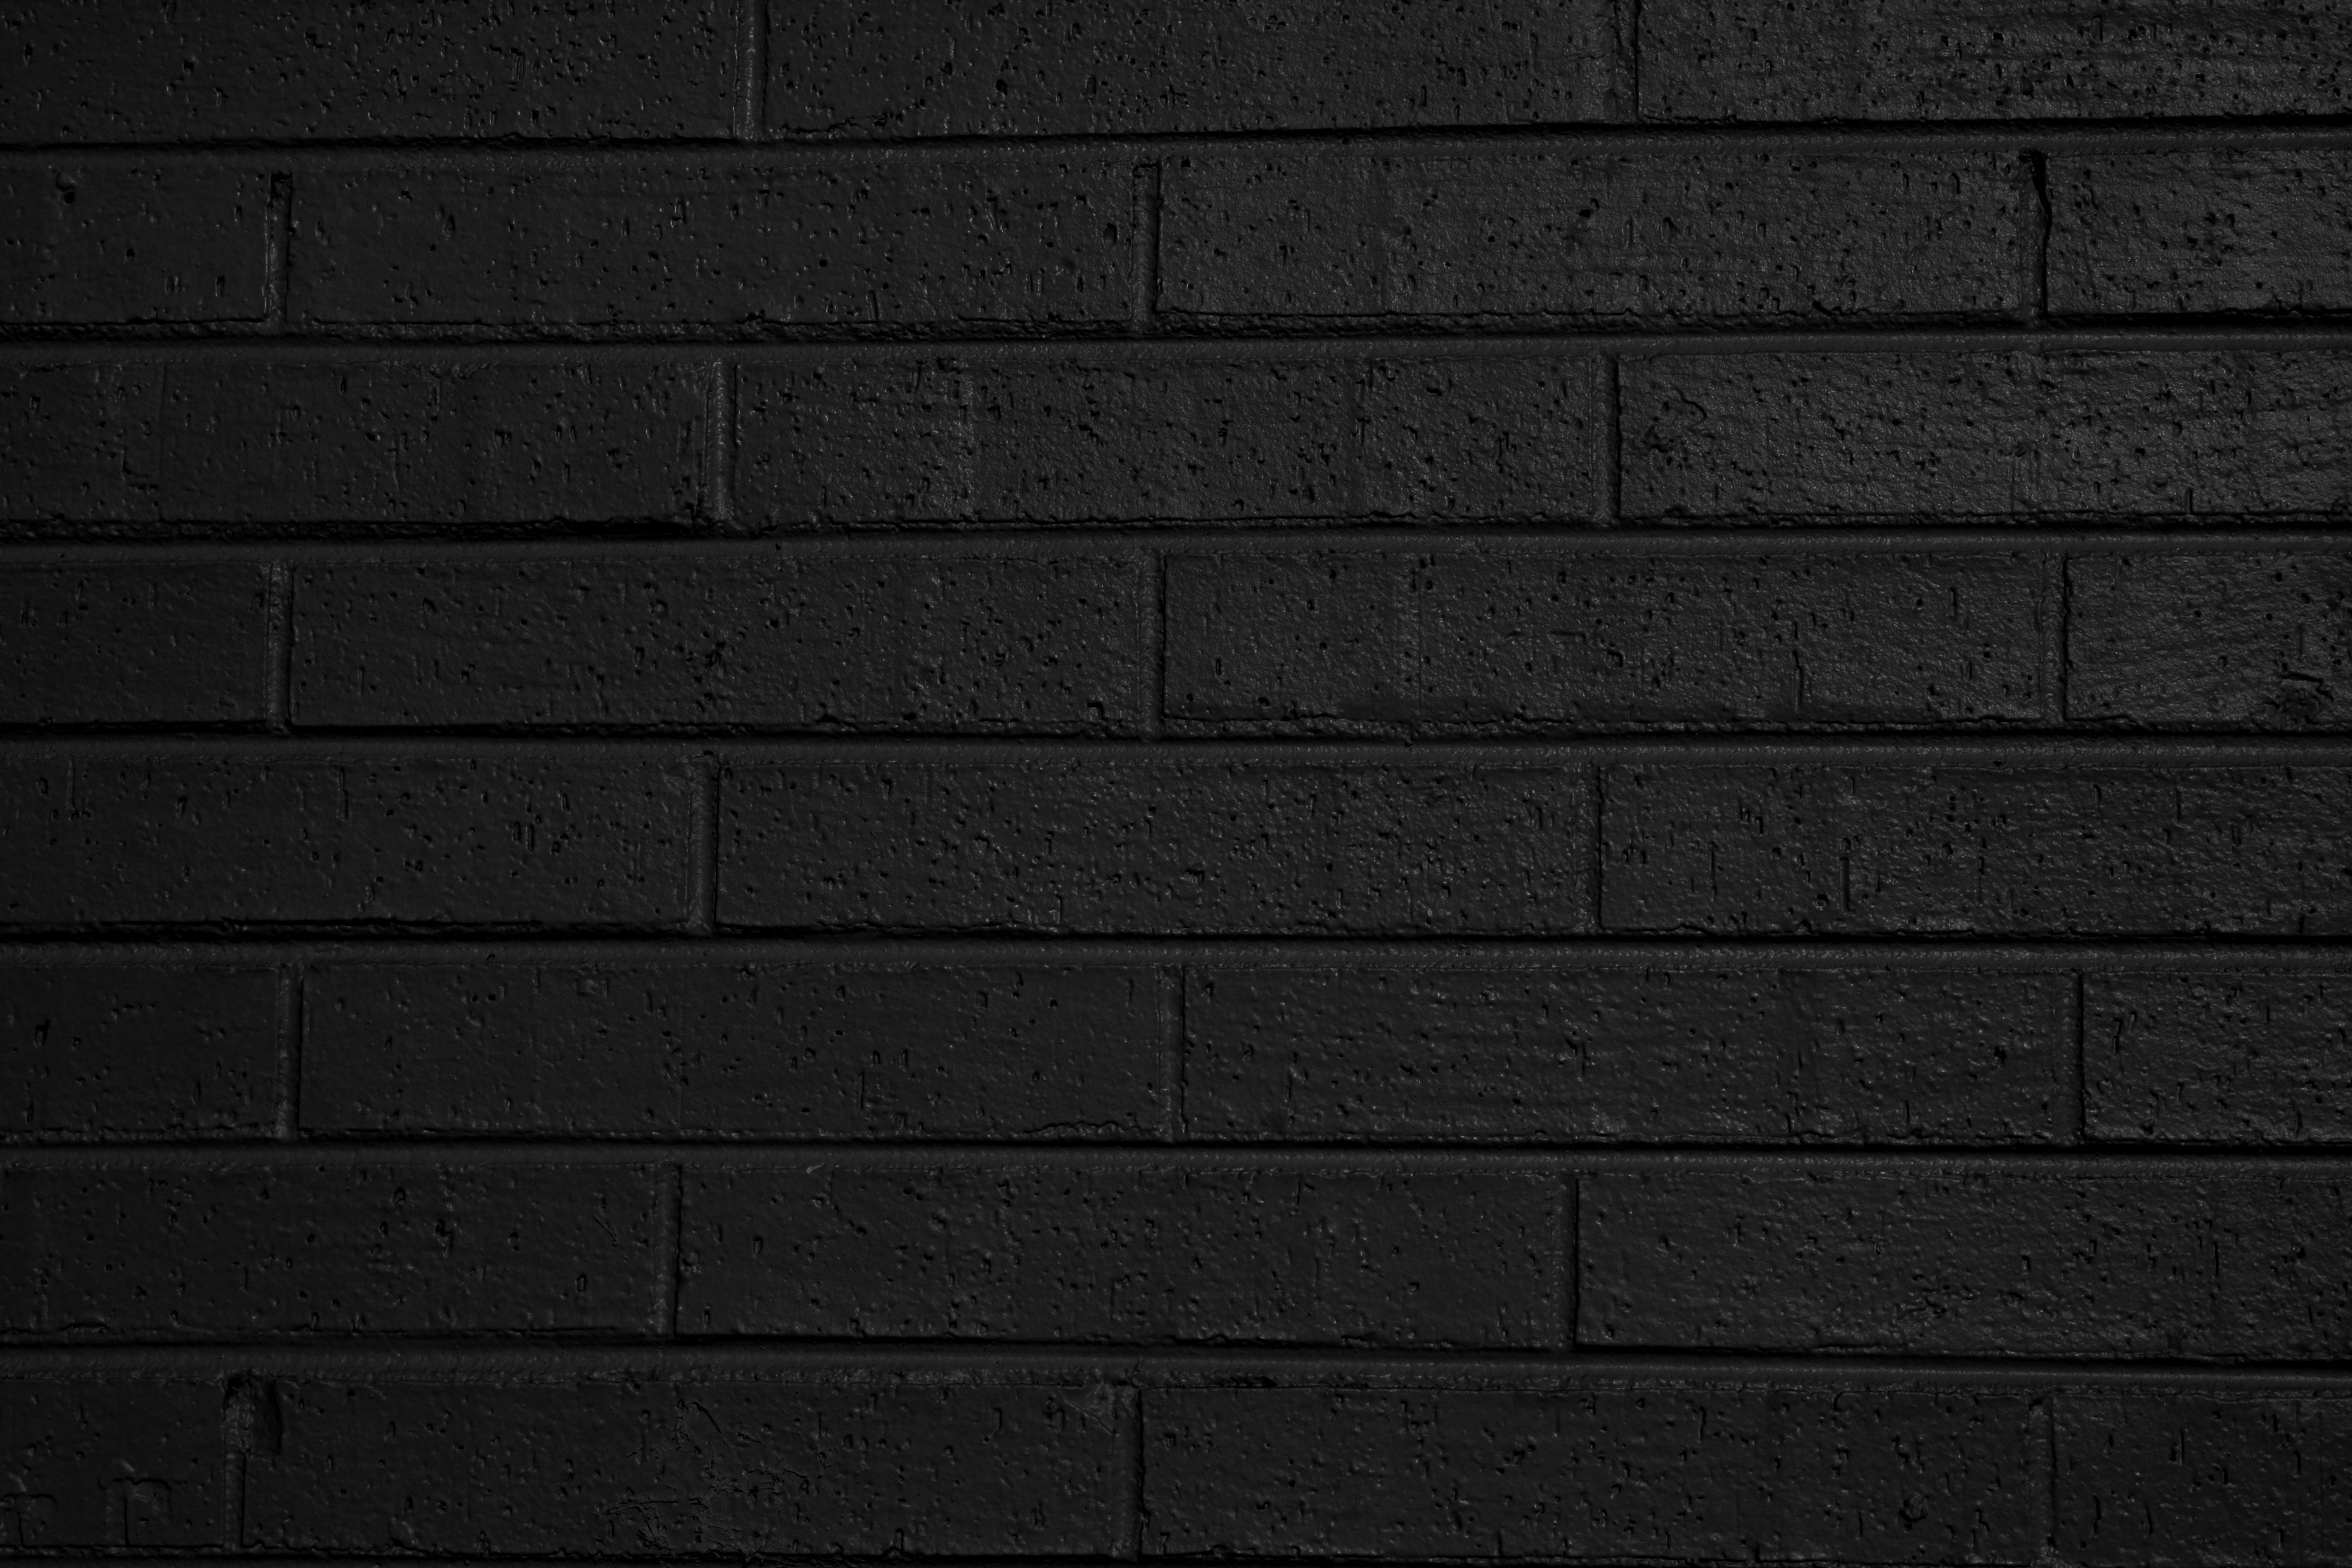 Black Painted Brick Wall Texture Picture Free Photograph